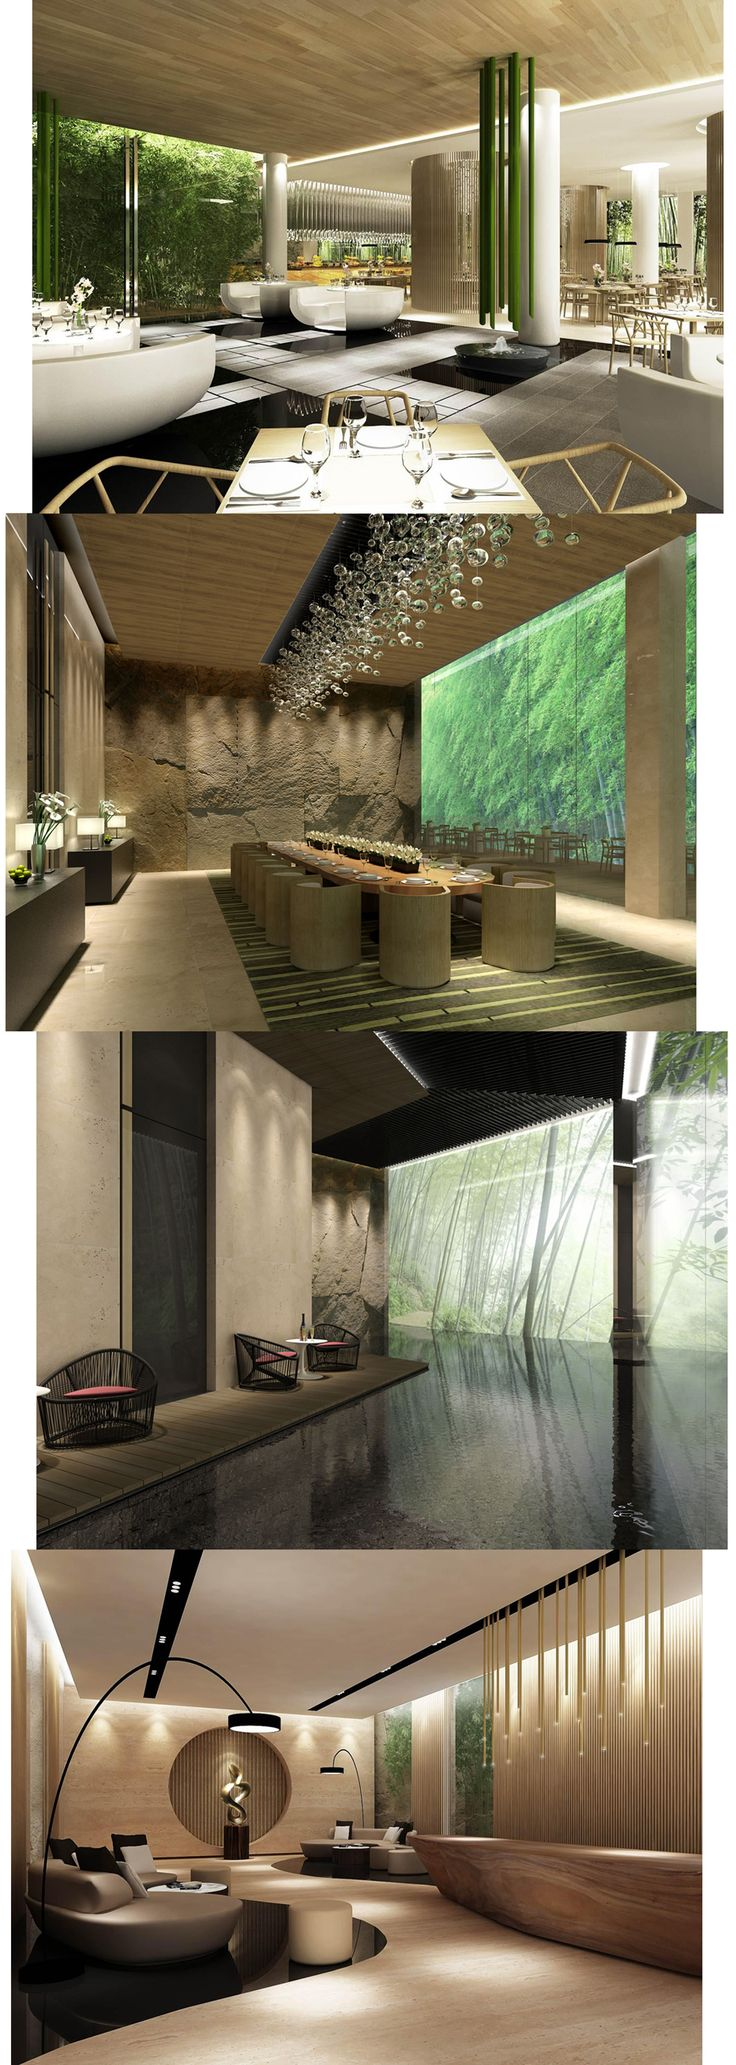 #Bamboo Resort Hotel http://www.clubbamboo.com/